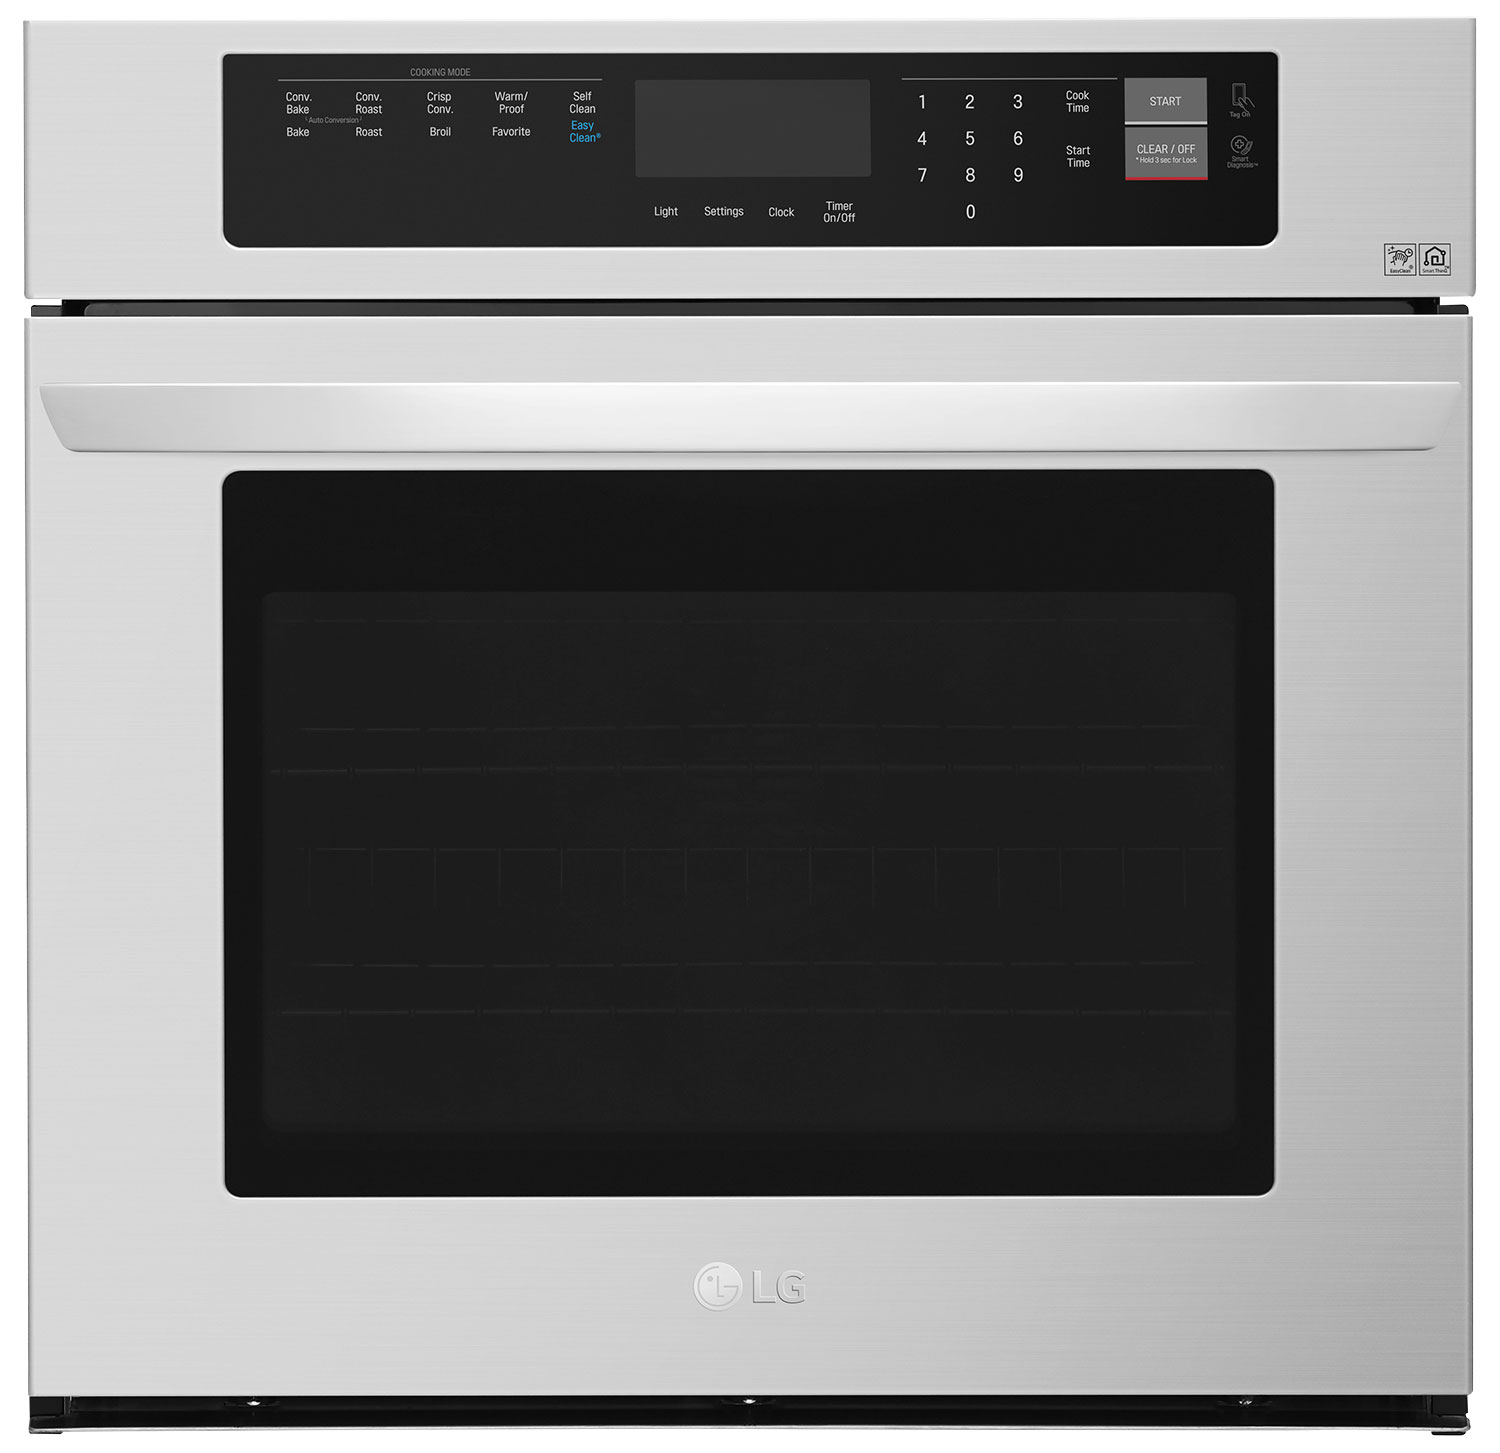 LG 4.7 Cu. Ft. Single Wall Oven – LWS3063ST